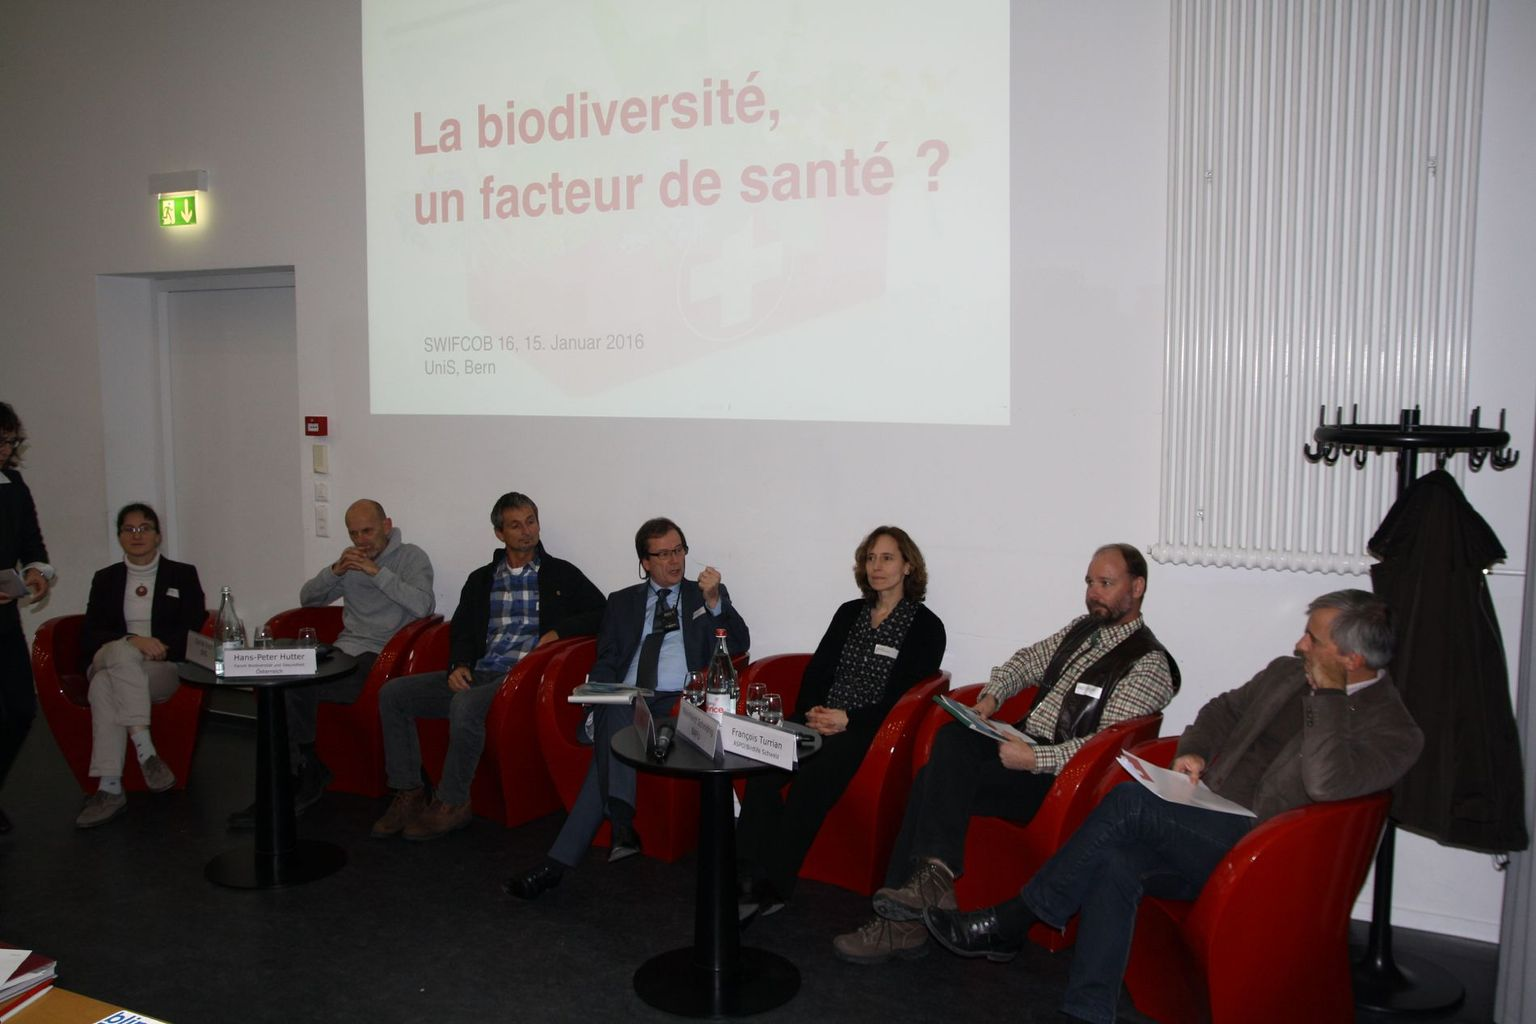 SWIFCOB 16 : table ronde